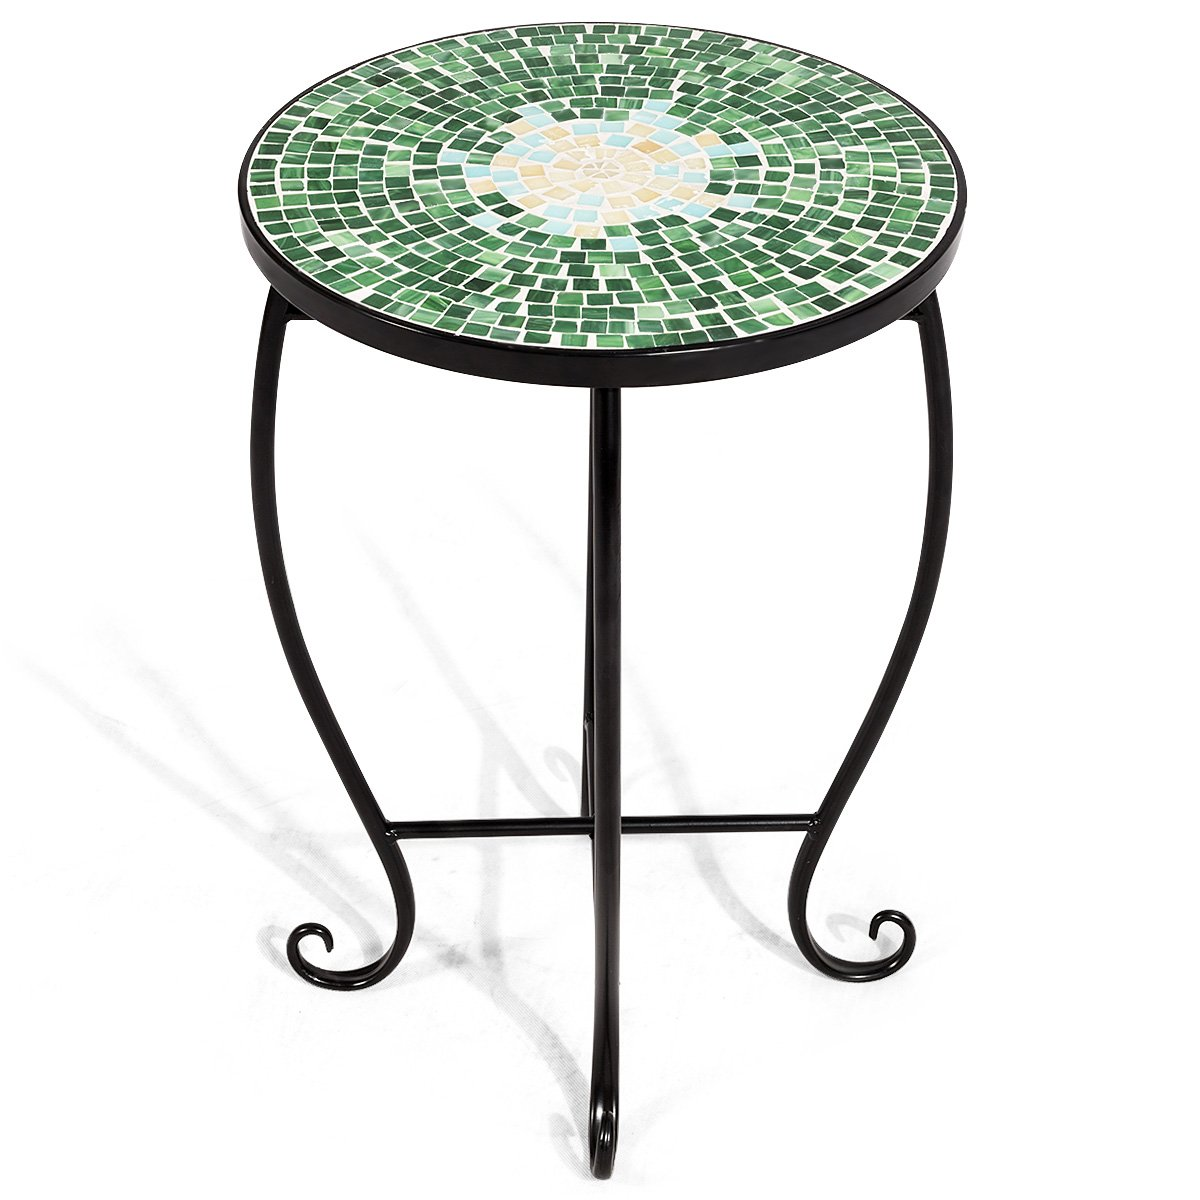 giantex mosaic round side accent table patio plant indoor stand porch beach theme balcony back deck pool decor metal cobalt glass top outdoor white corner end blue runner shoe